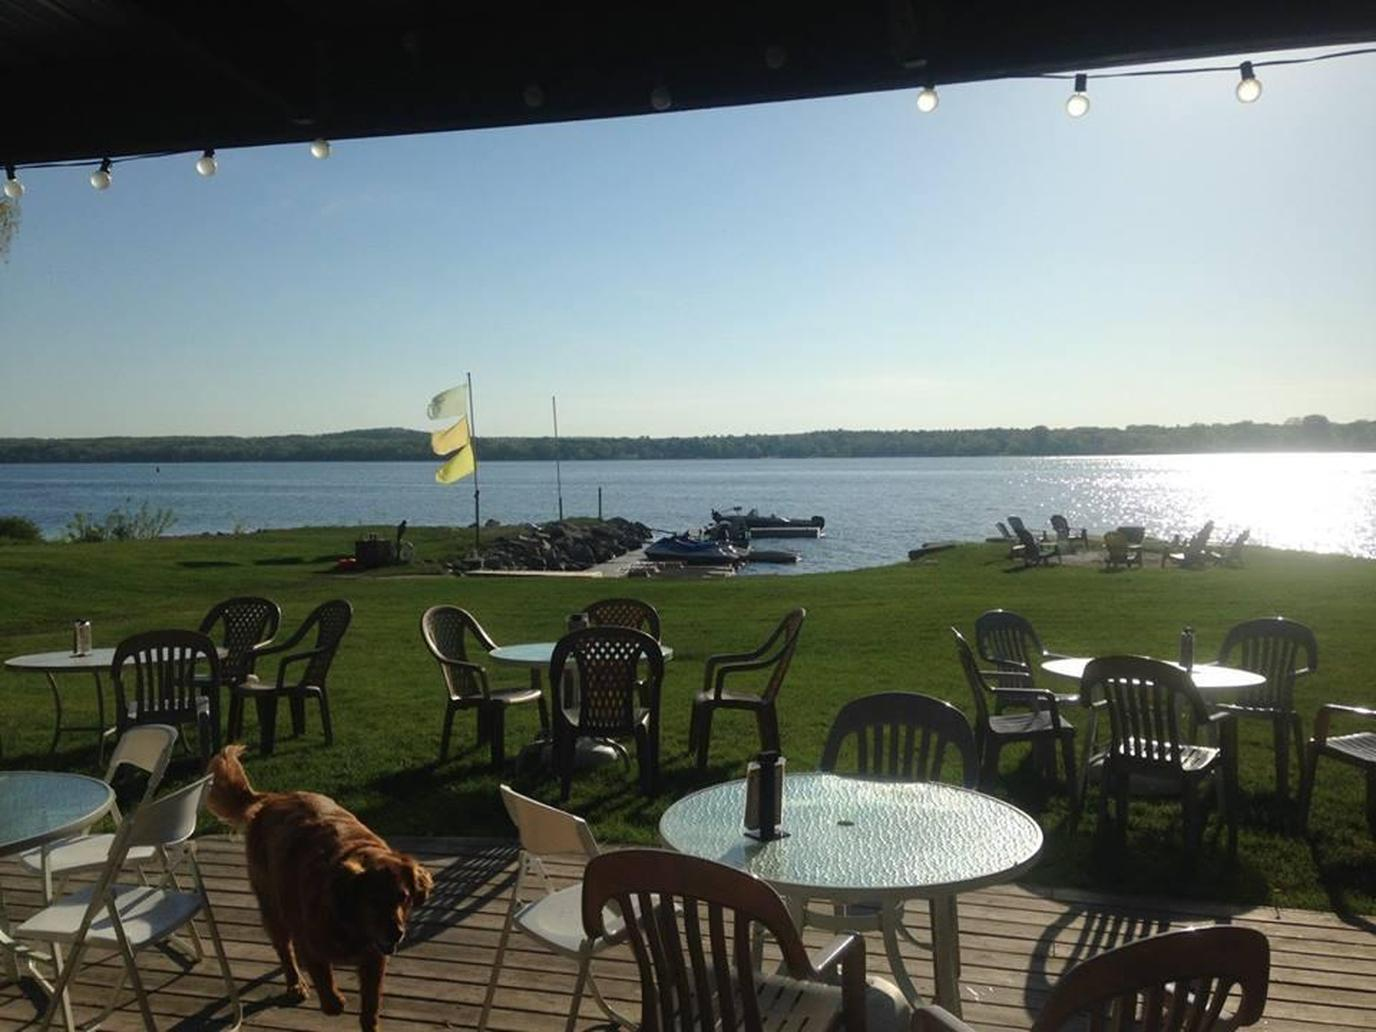 Pet-friendly restaurant in Great Lakes